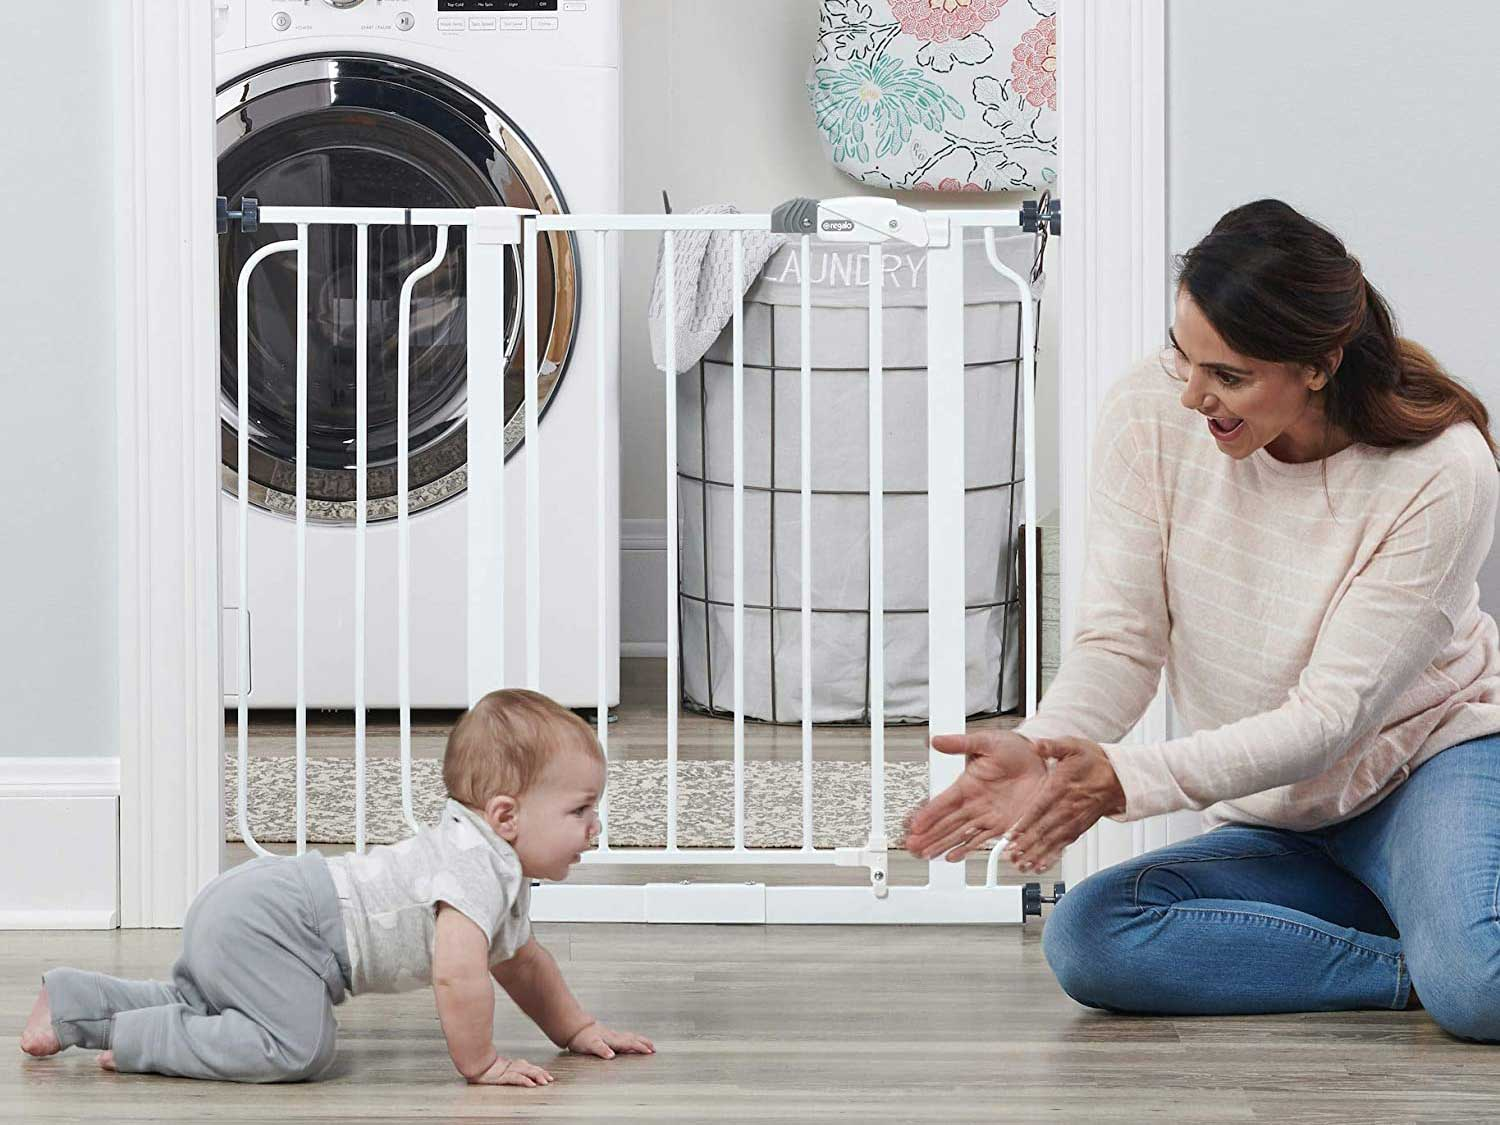 Mom and baby play in front of baby gate